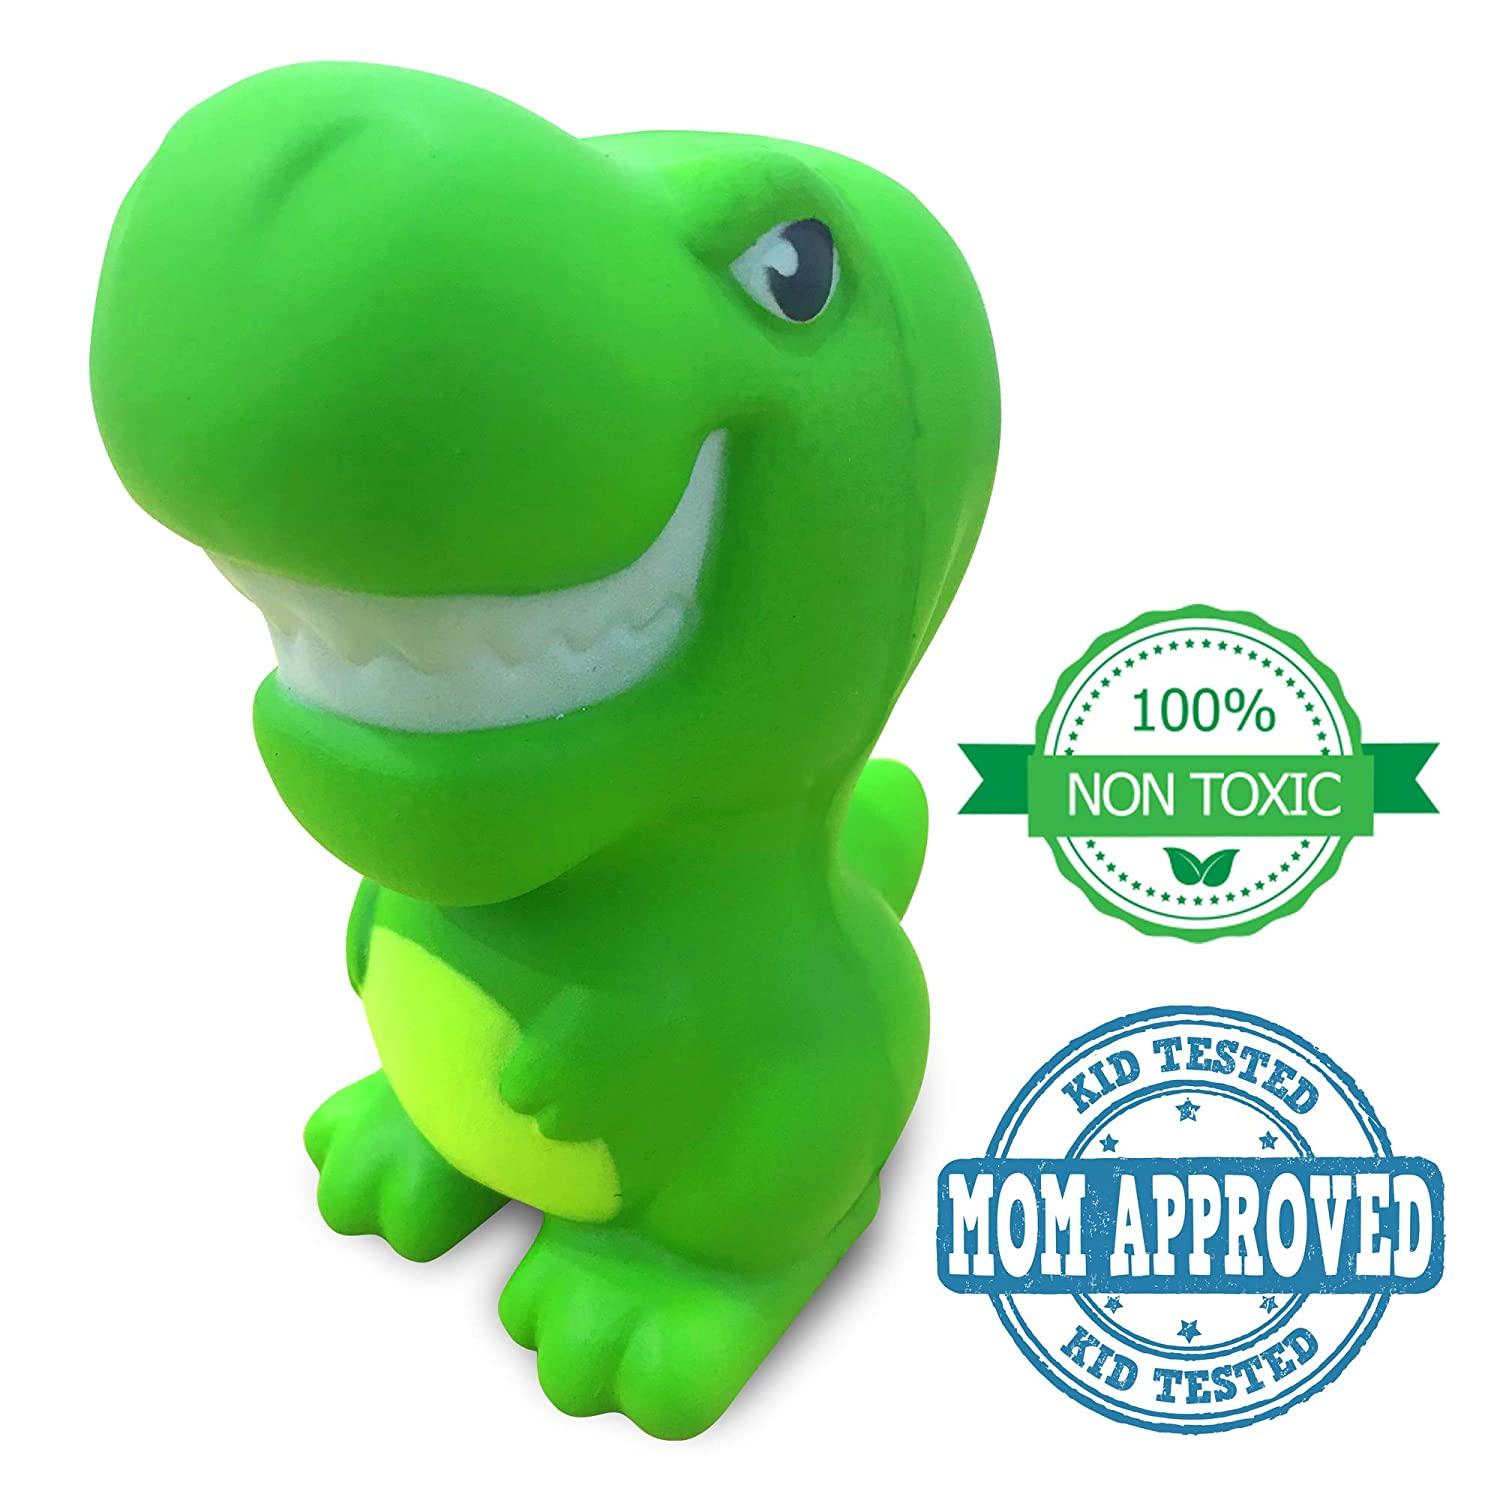 Cute and Scented Animal Perfect for Kids Birthday Atavia Toys Squishy Dinosaur Squeeze Toy Best Novelty Toys Super Soft Christmas and Dinosaurs Party Slow Rise Squishies for Stress Relief